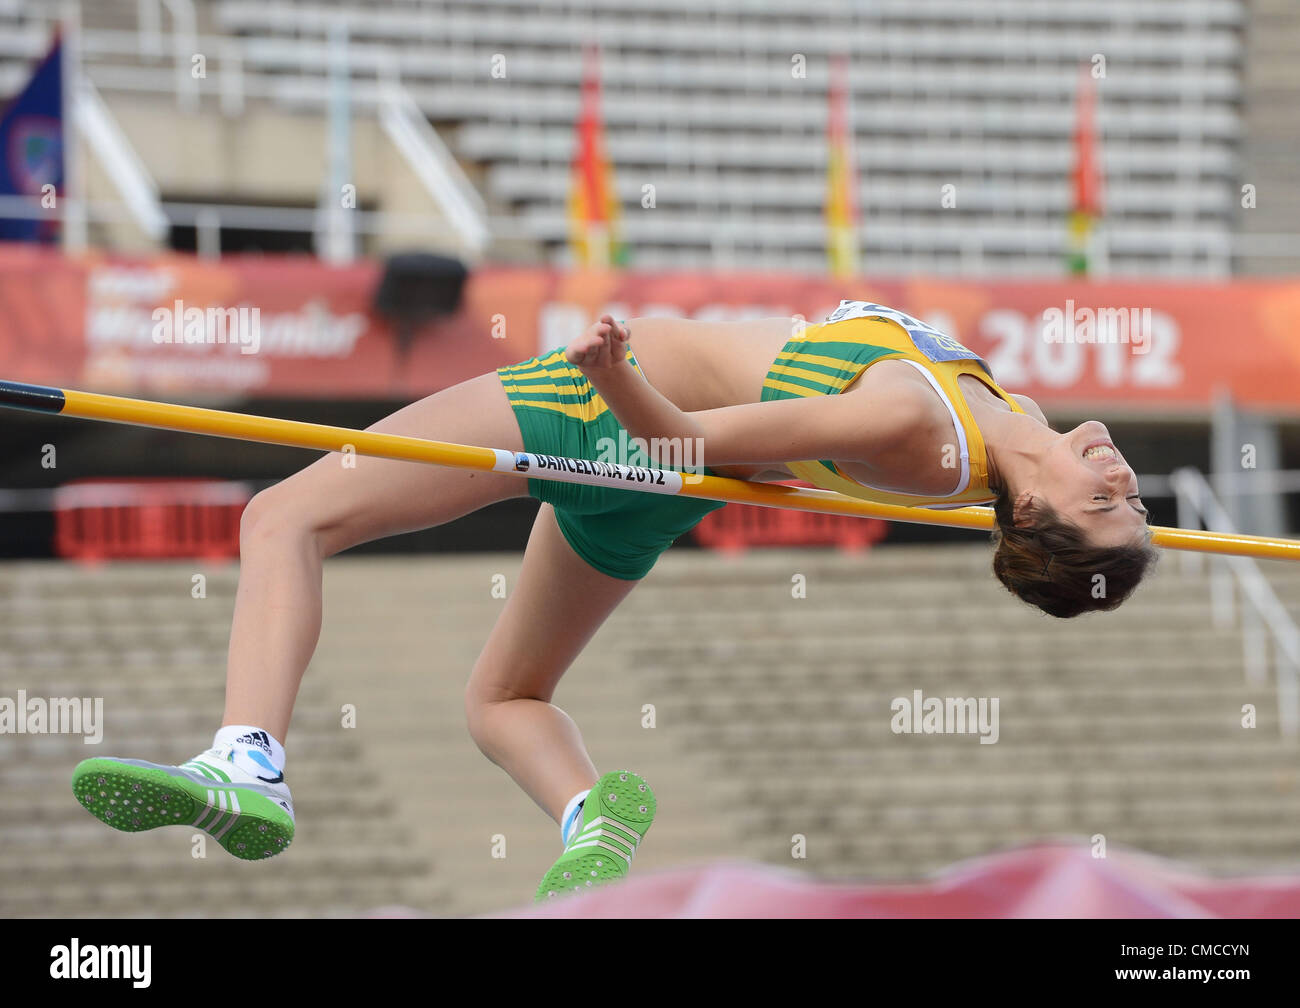 BARCELONA, Spain: Sunday 15 July 2012, Julia du Plessis of South Africa in the women's high jump during day - Stock Image